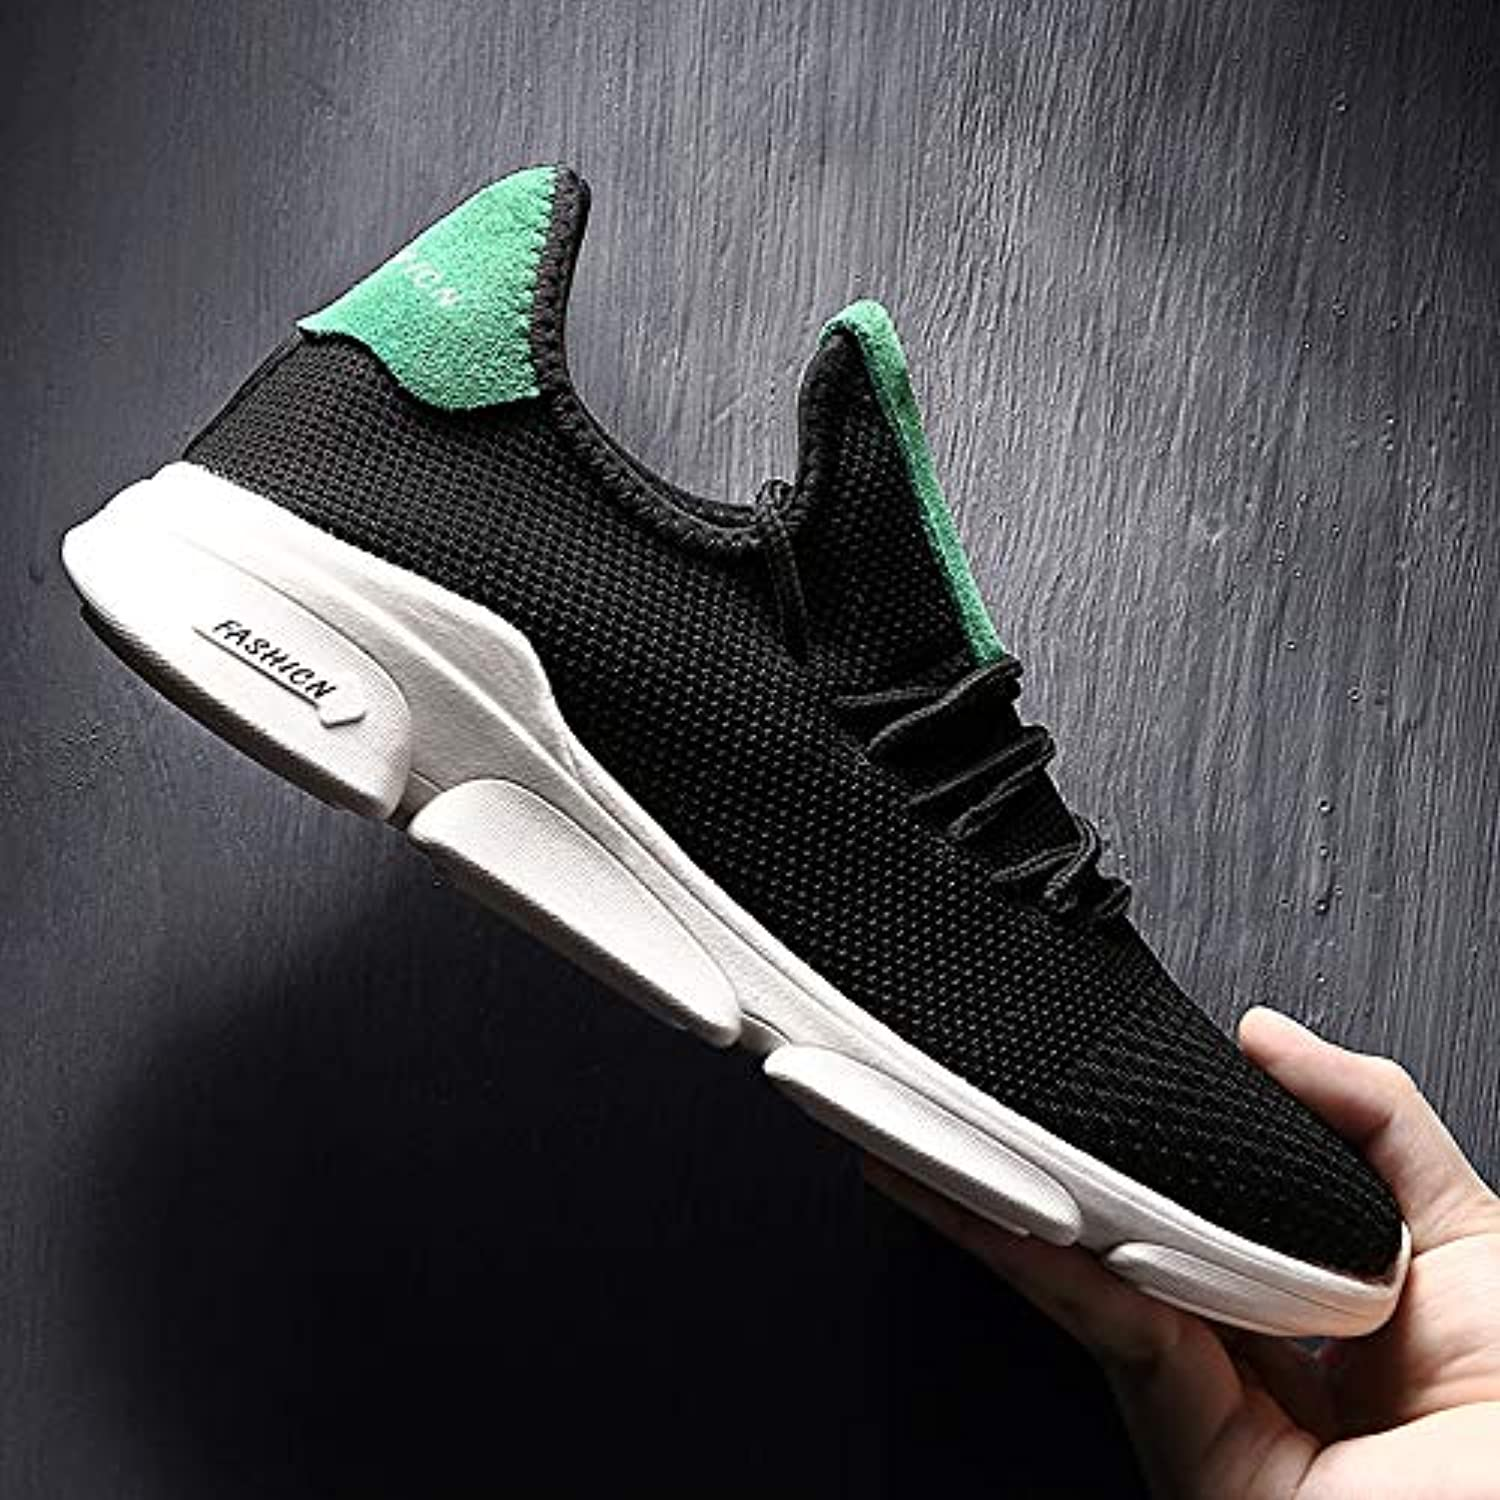 LOVDRAM Men'S shoes Flying Woven Casual Sports shoes Men'S Breathable Running shoes Street Fashion Large Size Men'S shoes